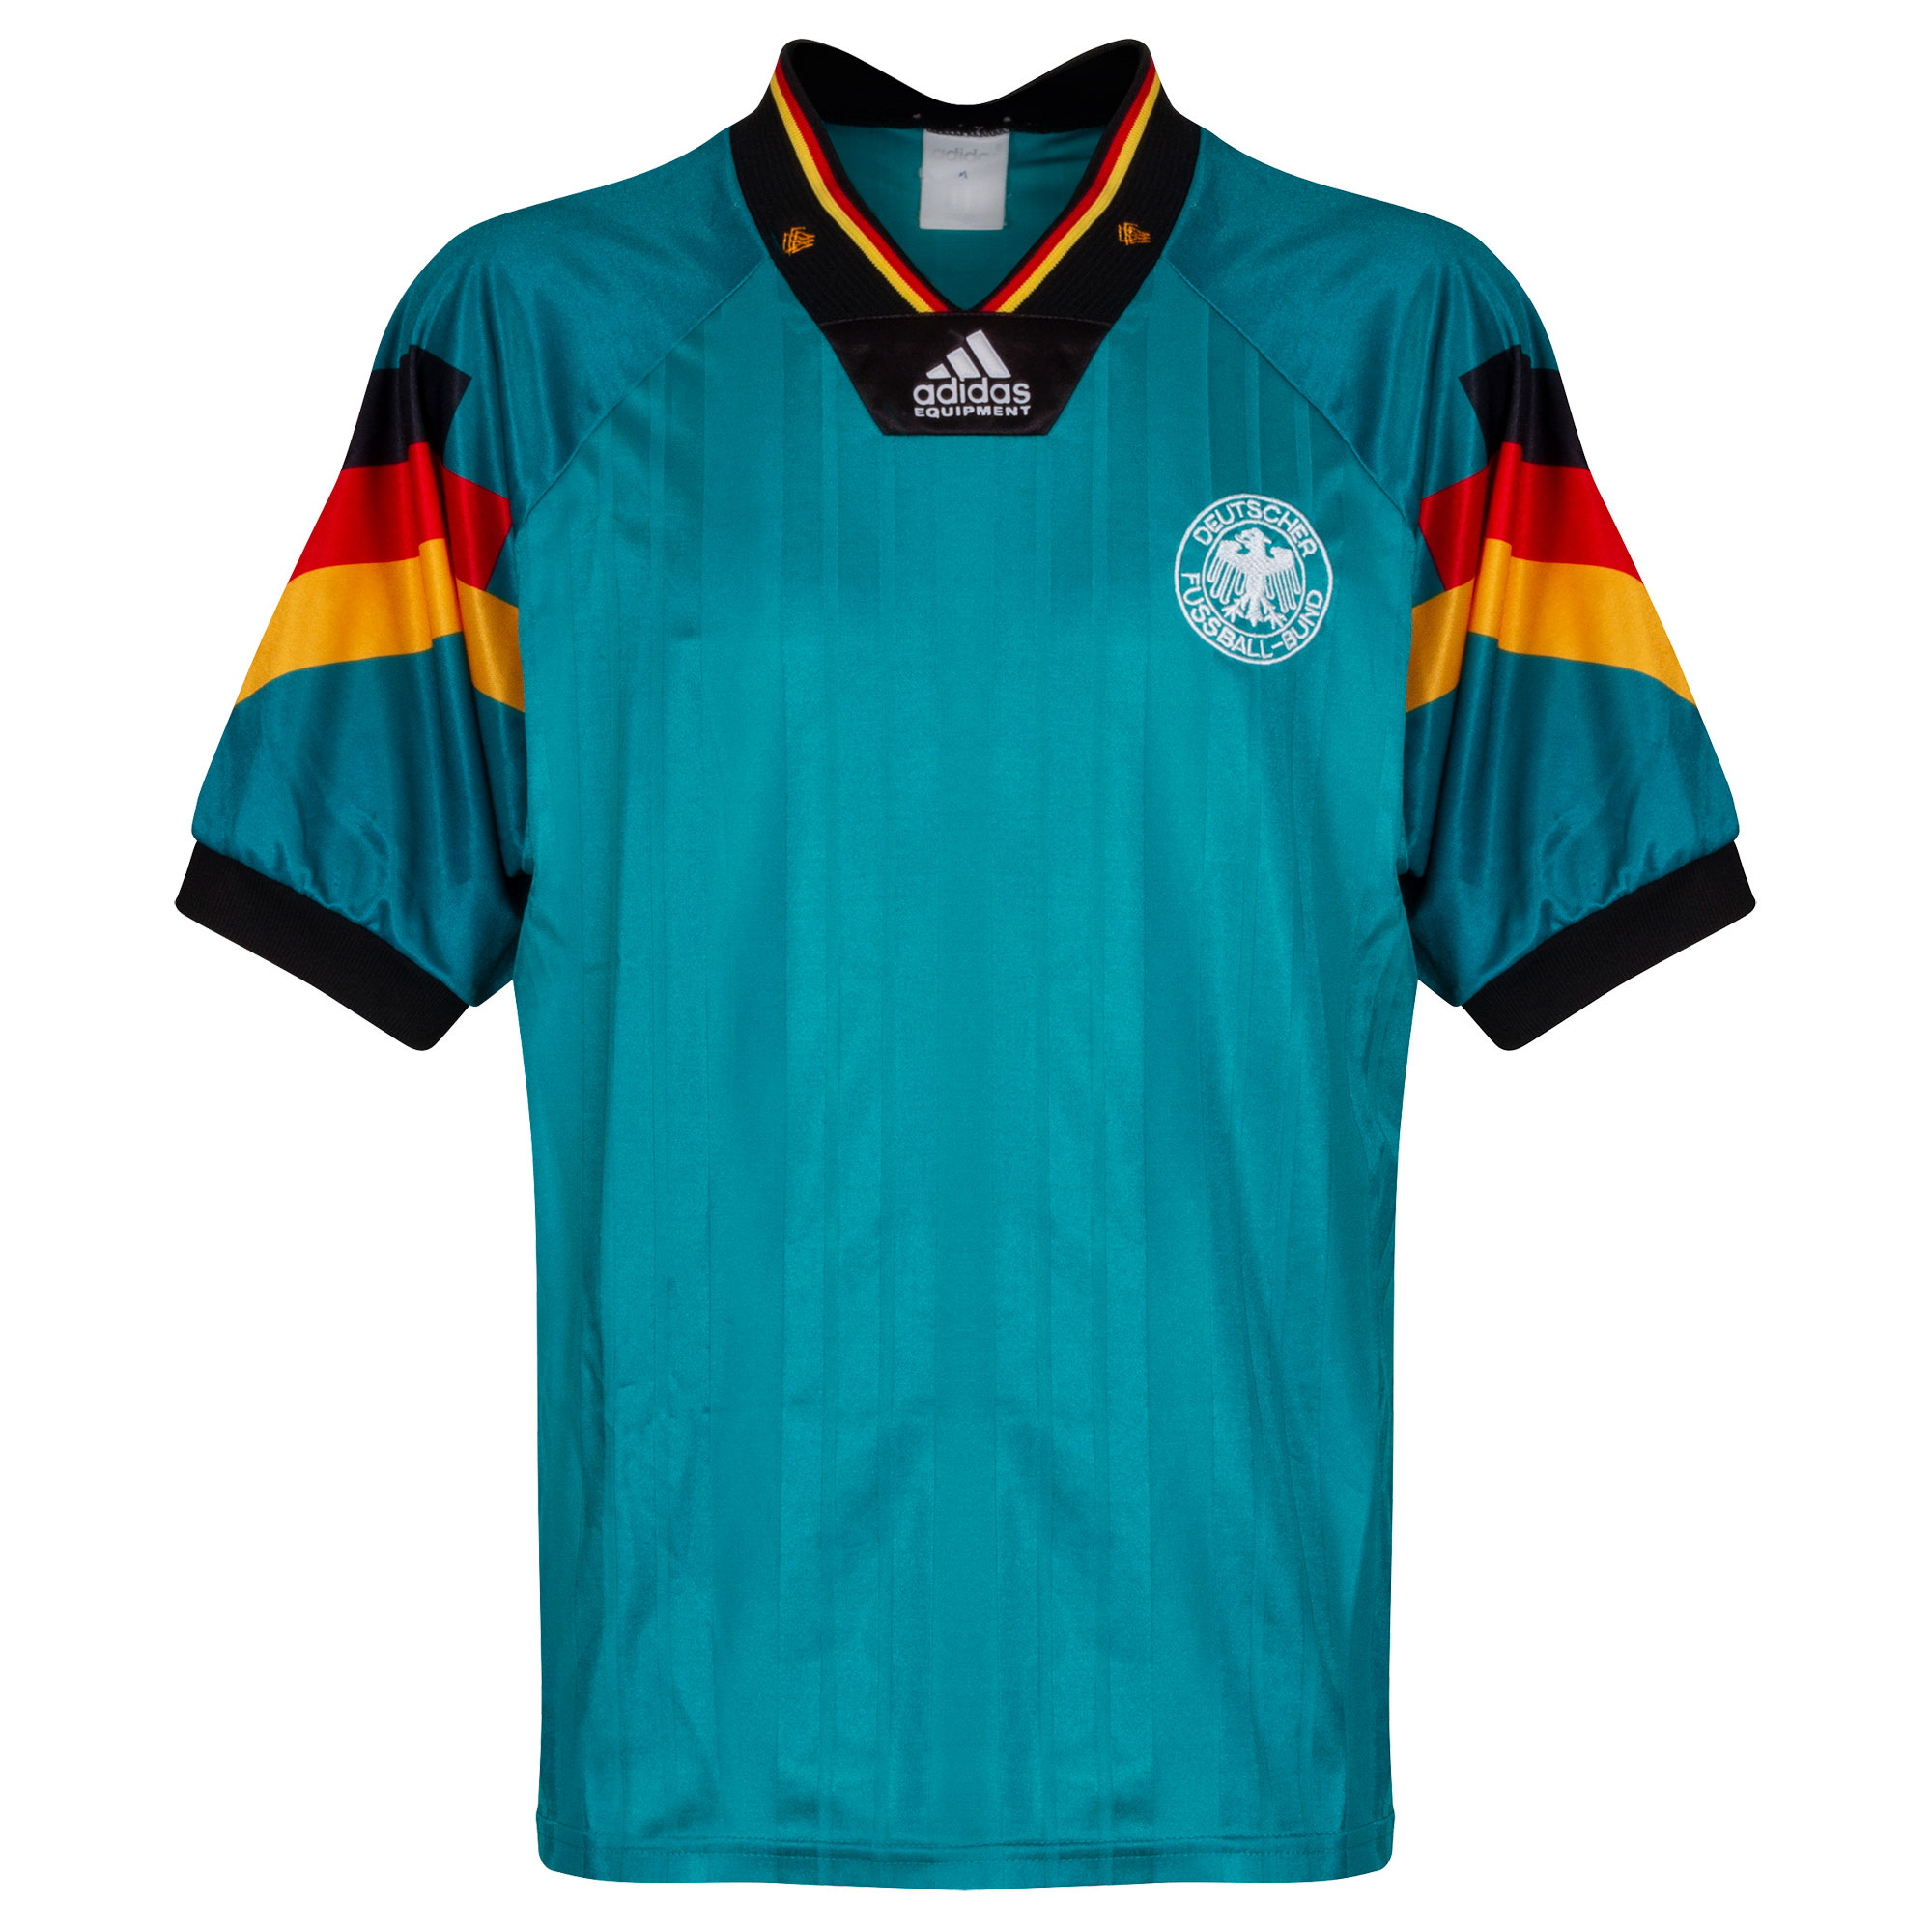 adidas Germany 1991-1992 Away Shirt - USED Condition (Great) - Size